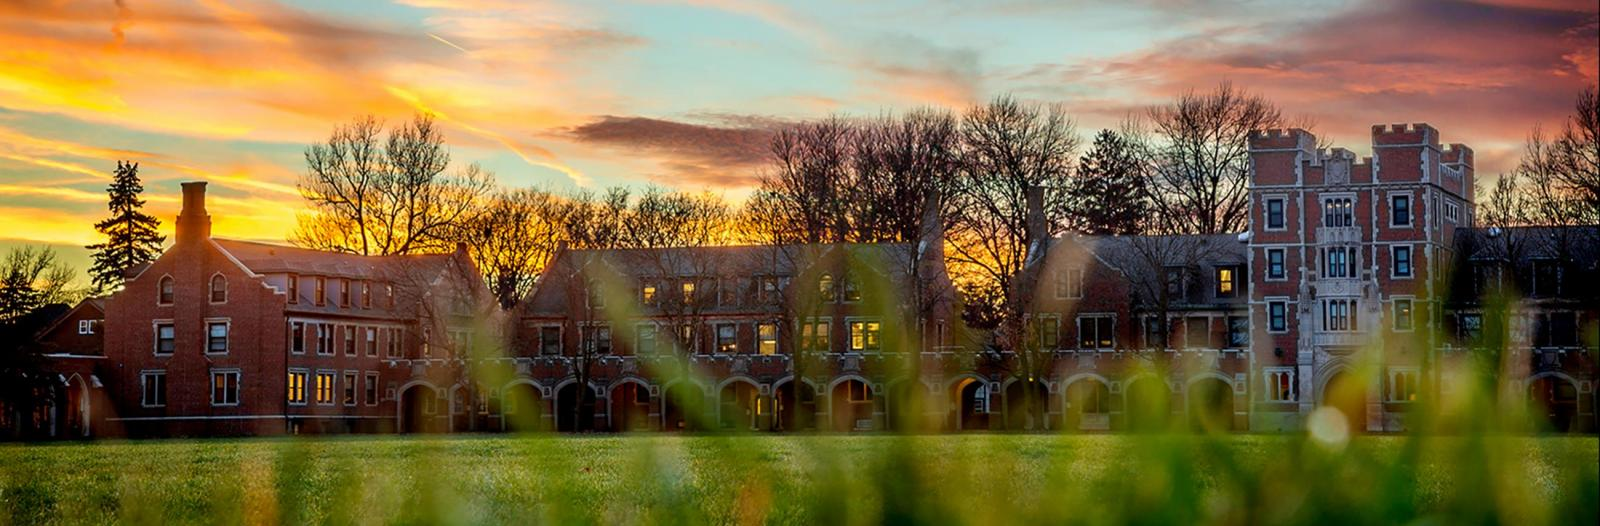 North campus at sunset